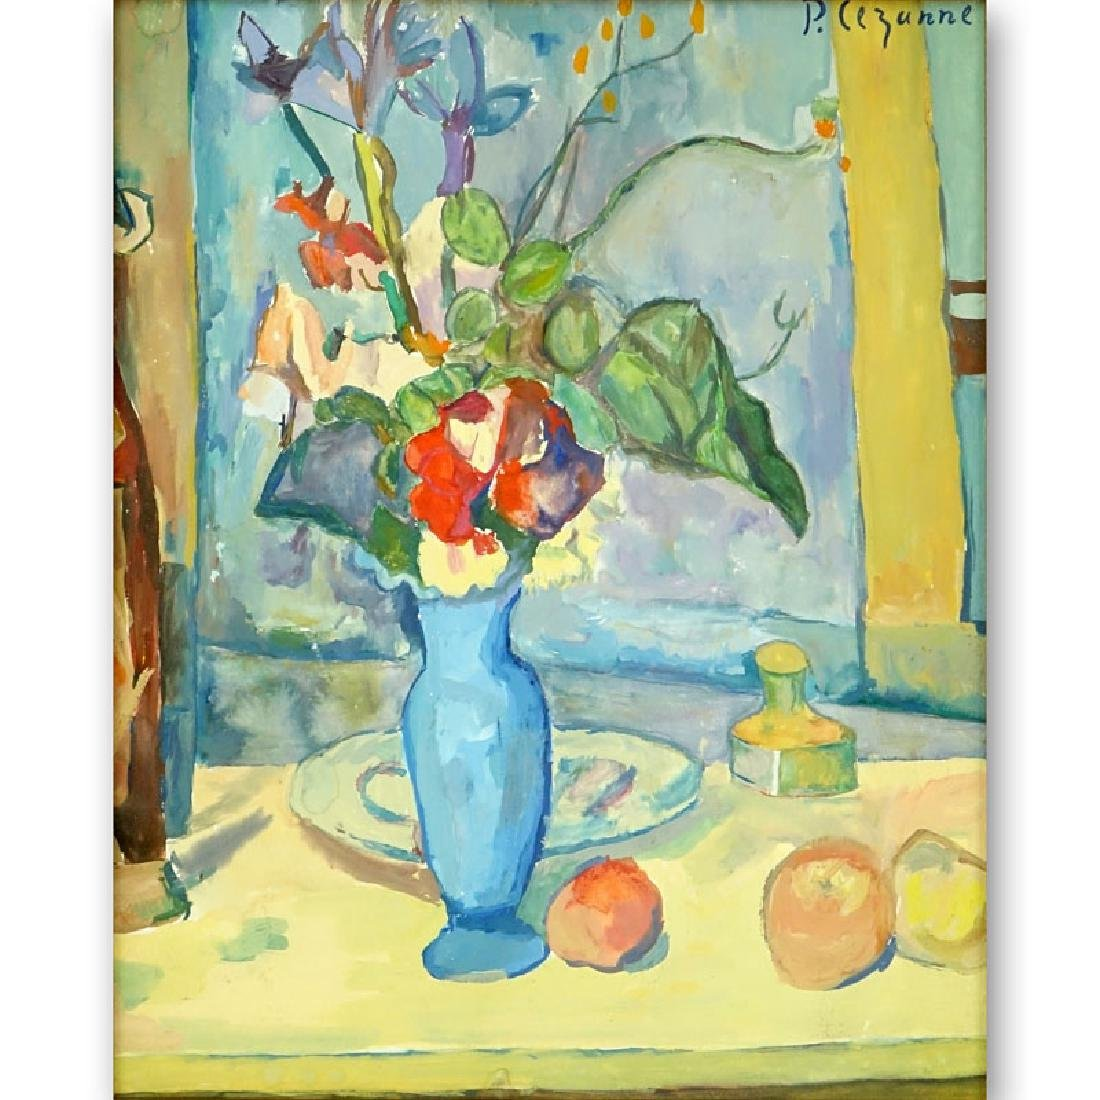 Signed P. Cezanne Gouache on paper, Still Life with